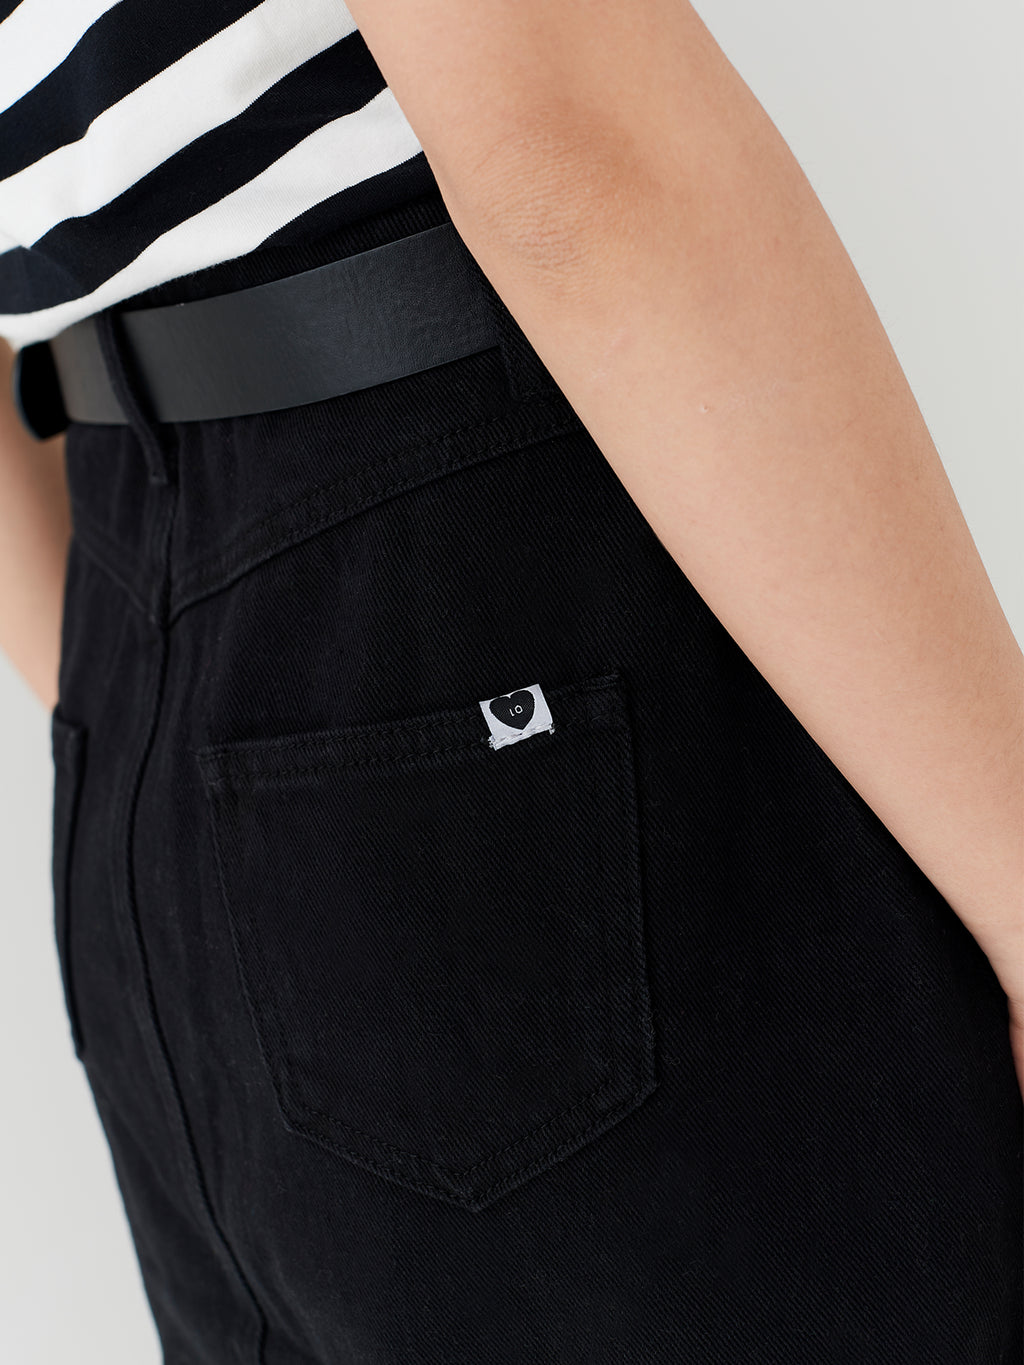 LO Black Button Through Skirt